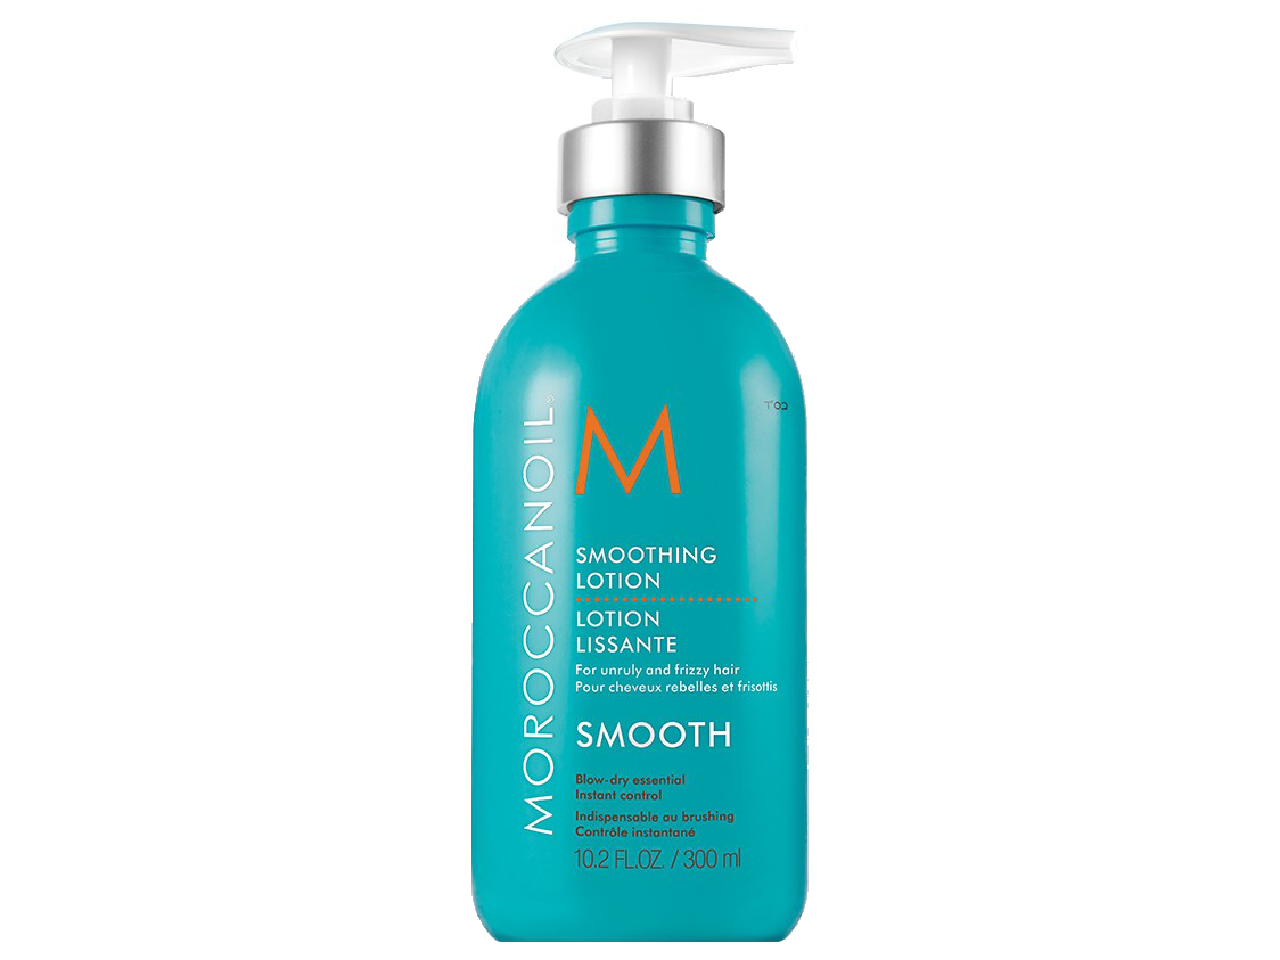 kem-say-suon-muot-danh-cho-toc-xoan-moroccanoil-smooth-300ml